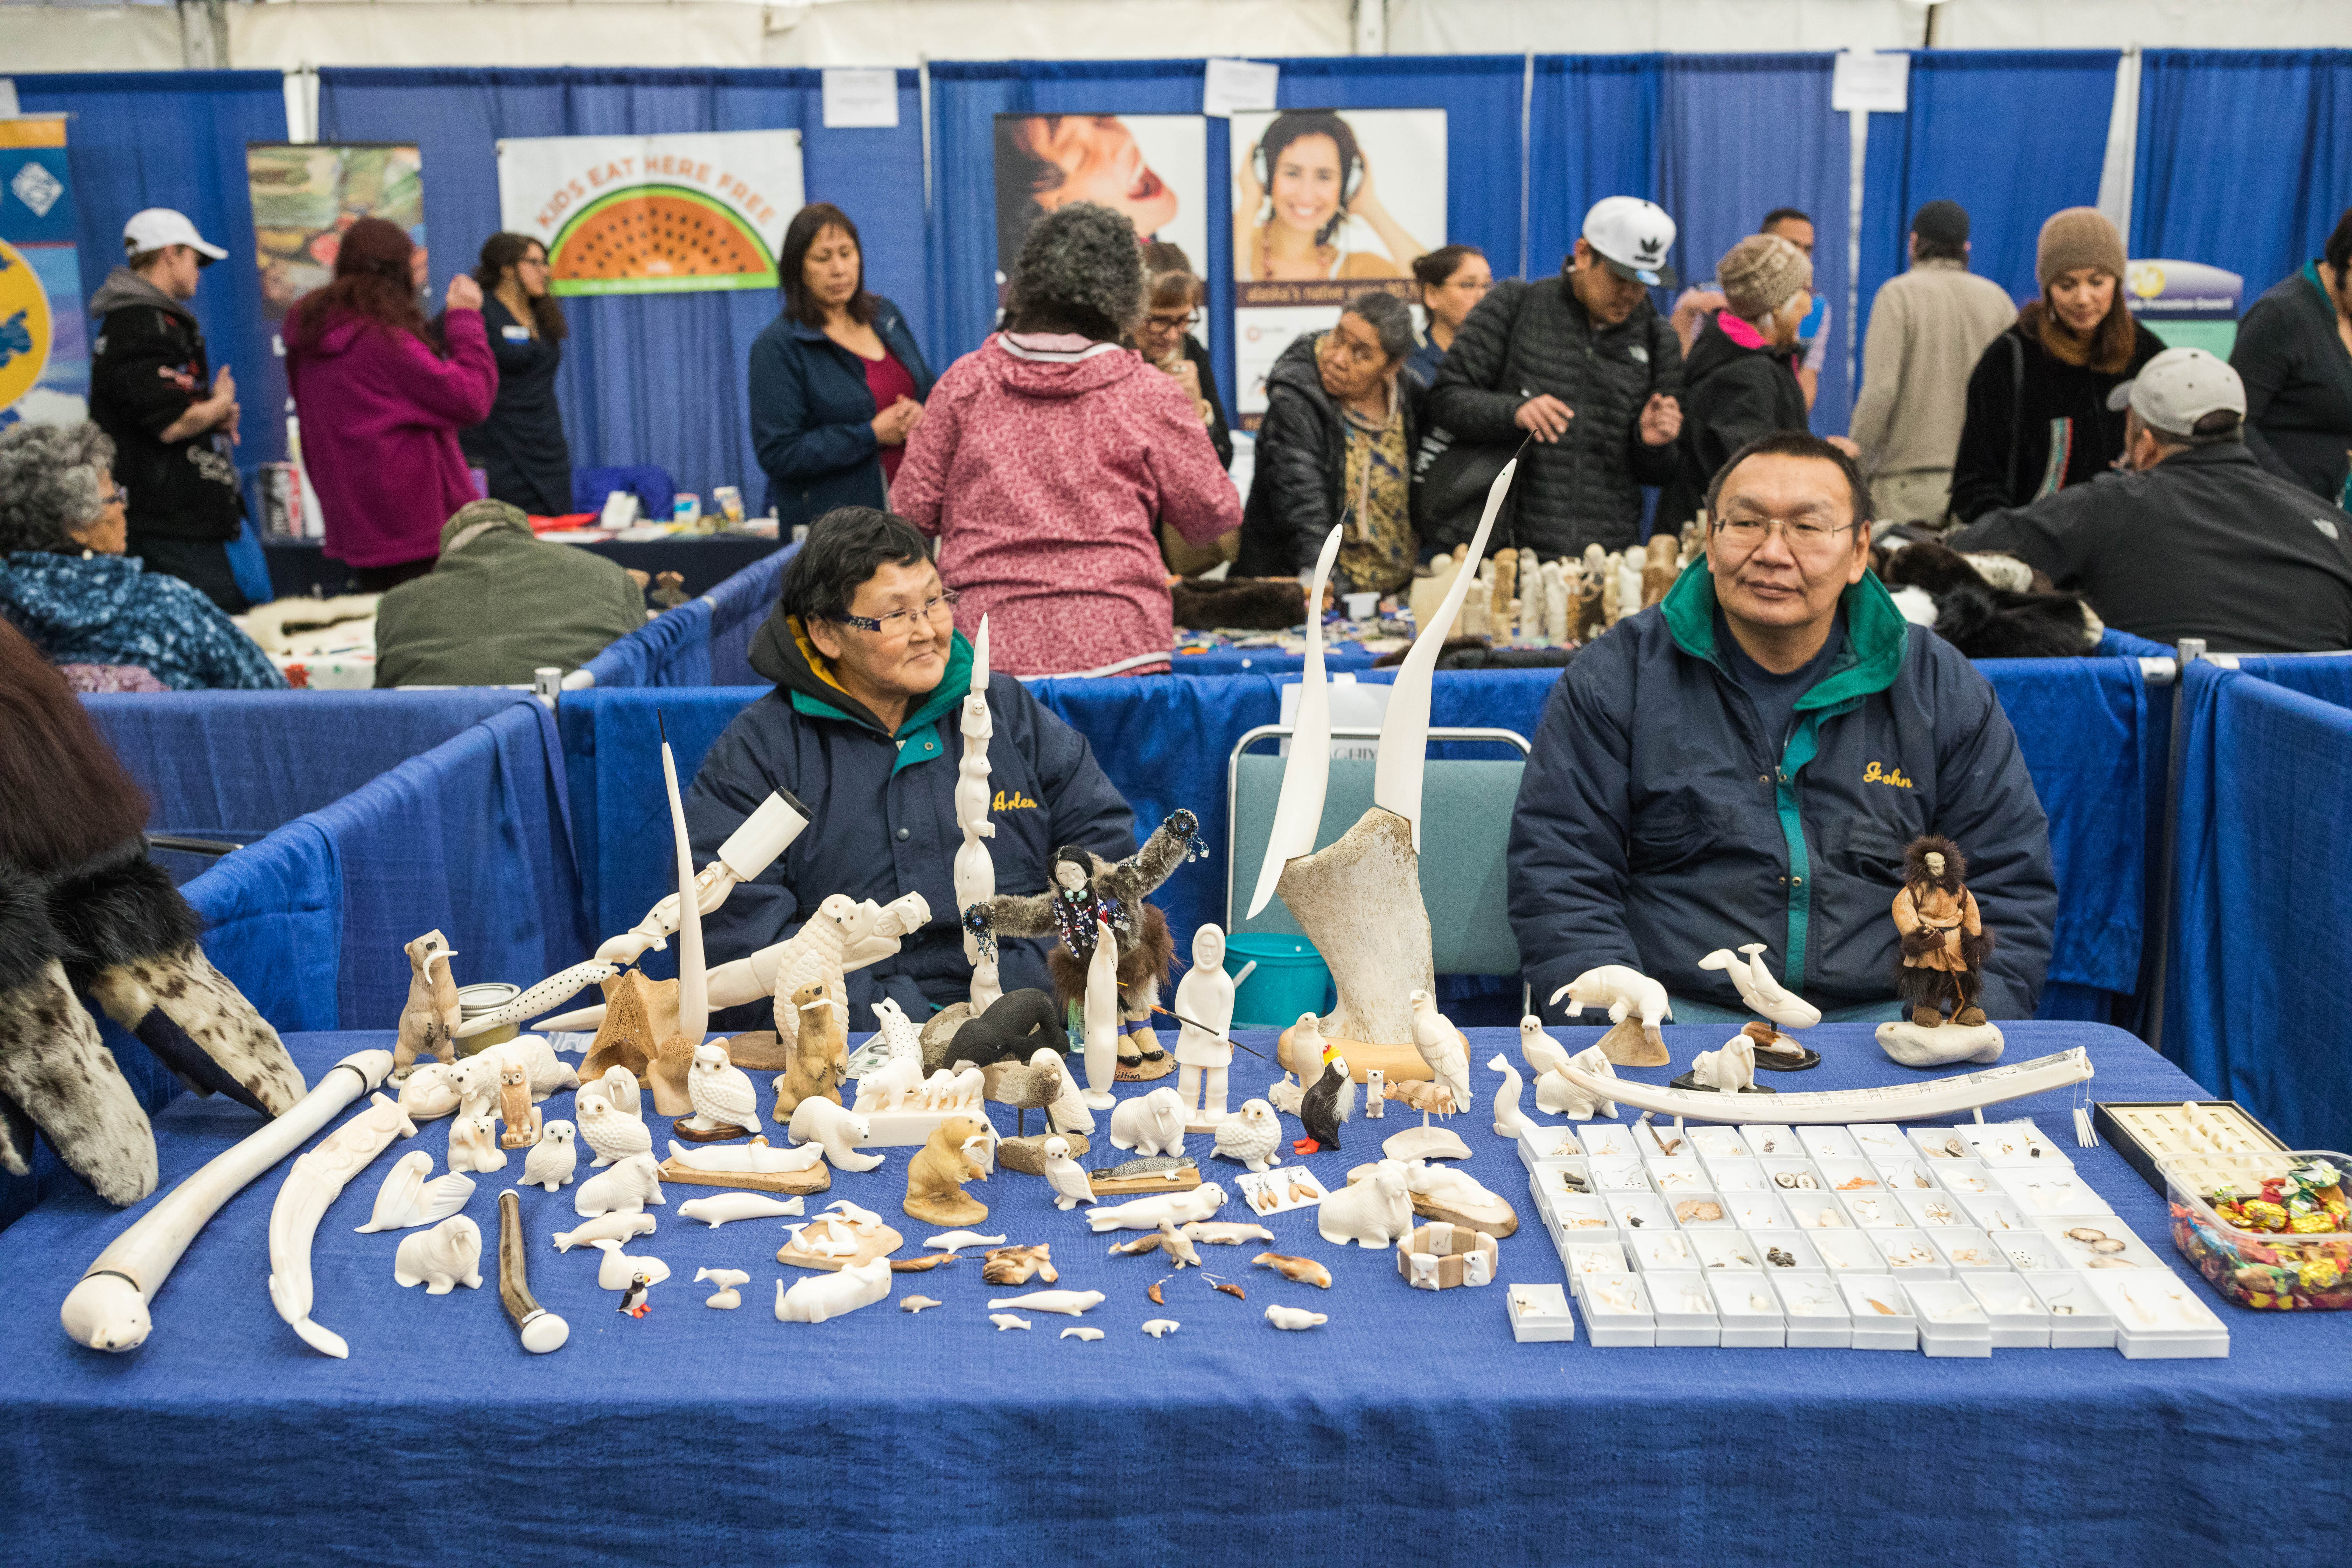 Efforts to protect African elephants are hurting Alaska Native ivory carvers